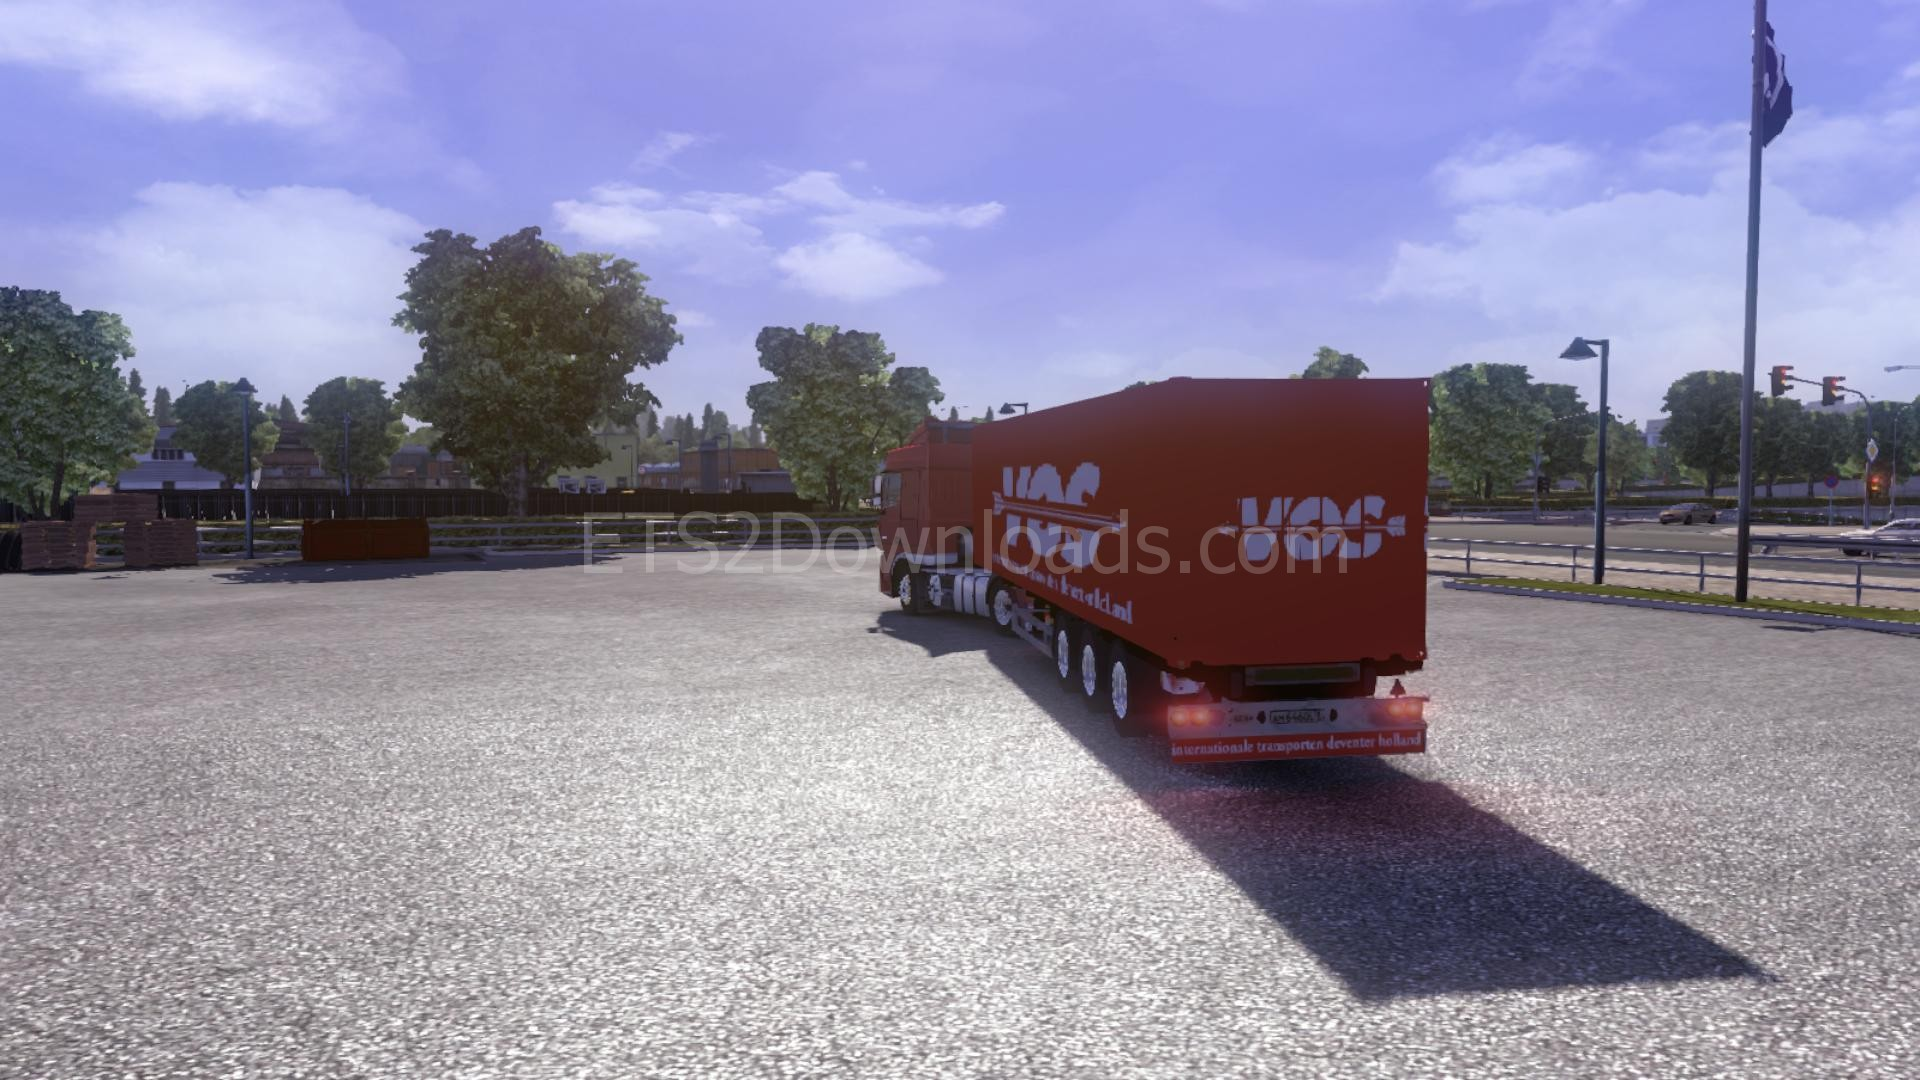 vos-container-ets2-1